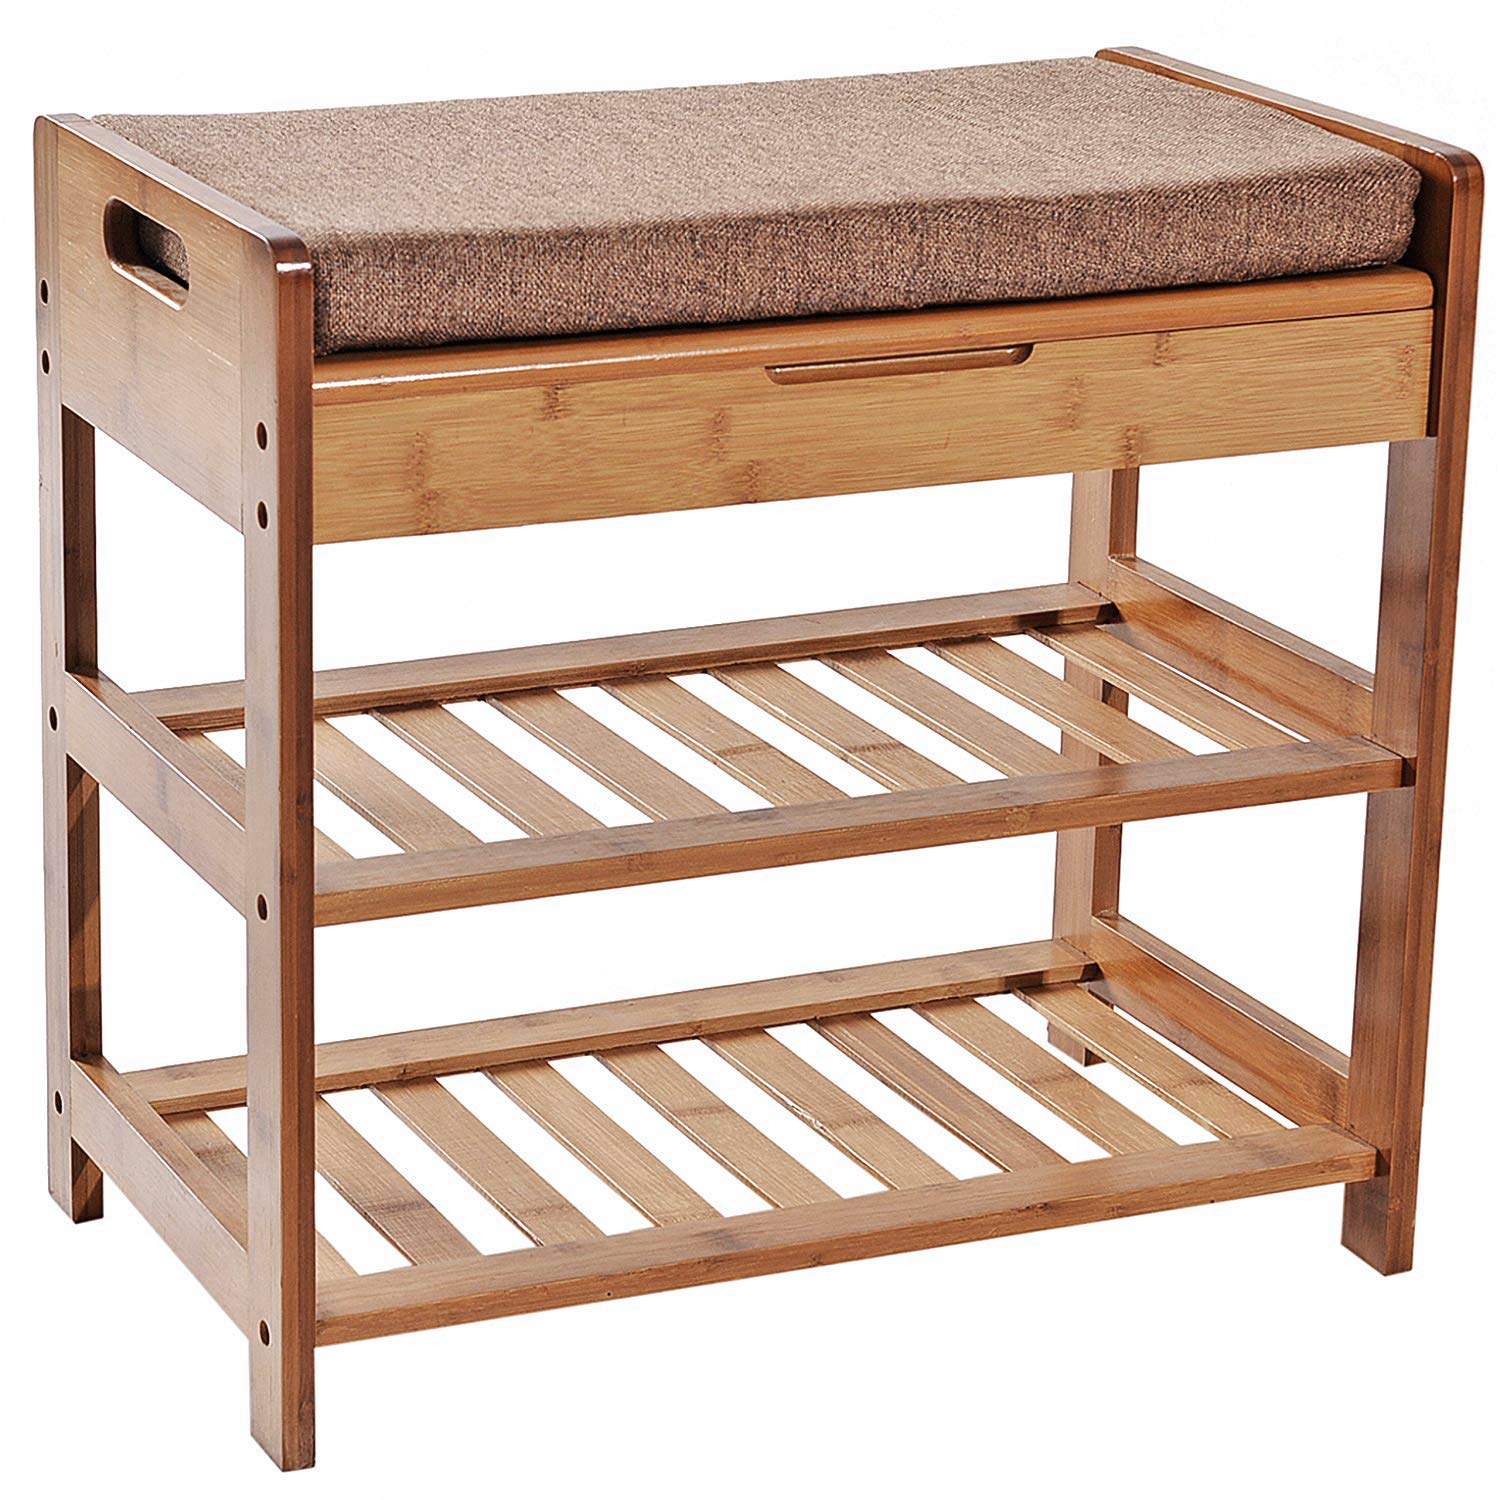 C&AHOME 3-Tier Bamboo Shoe Rack Bench, Shoe Organizer, Storage Shelf, Comfort Style, Perfect Modern Furniture with Soft Seat Cushion, Ideal for Entryway Hallway Bathroom Living Room and Corridor Brown by C&AHOME